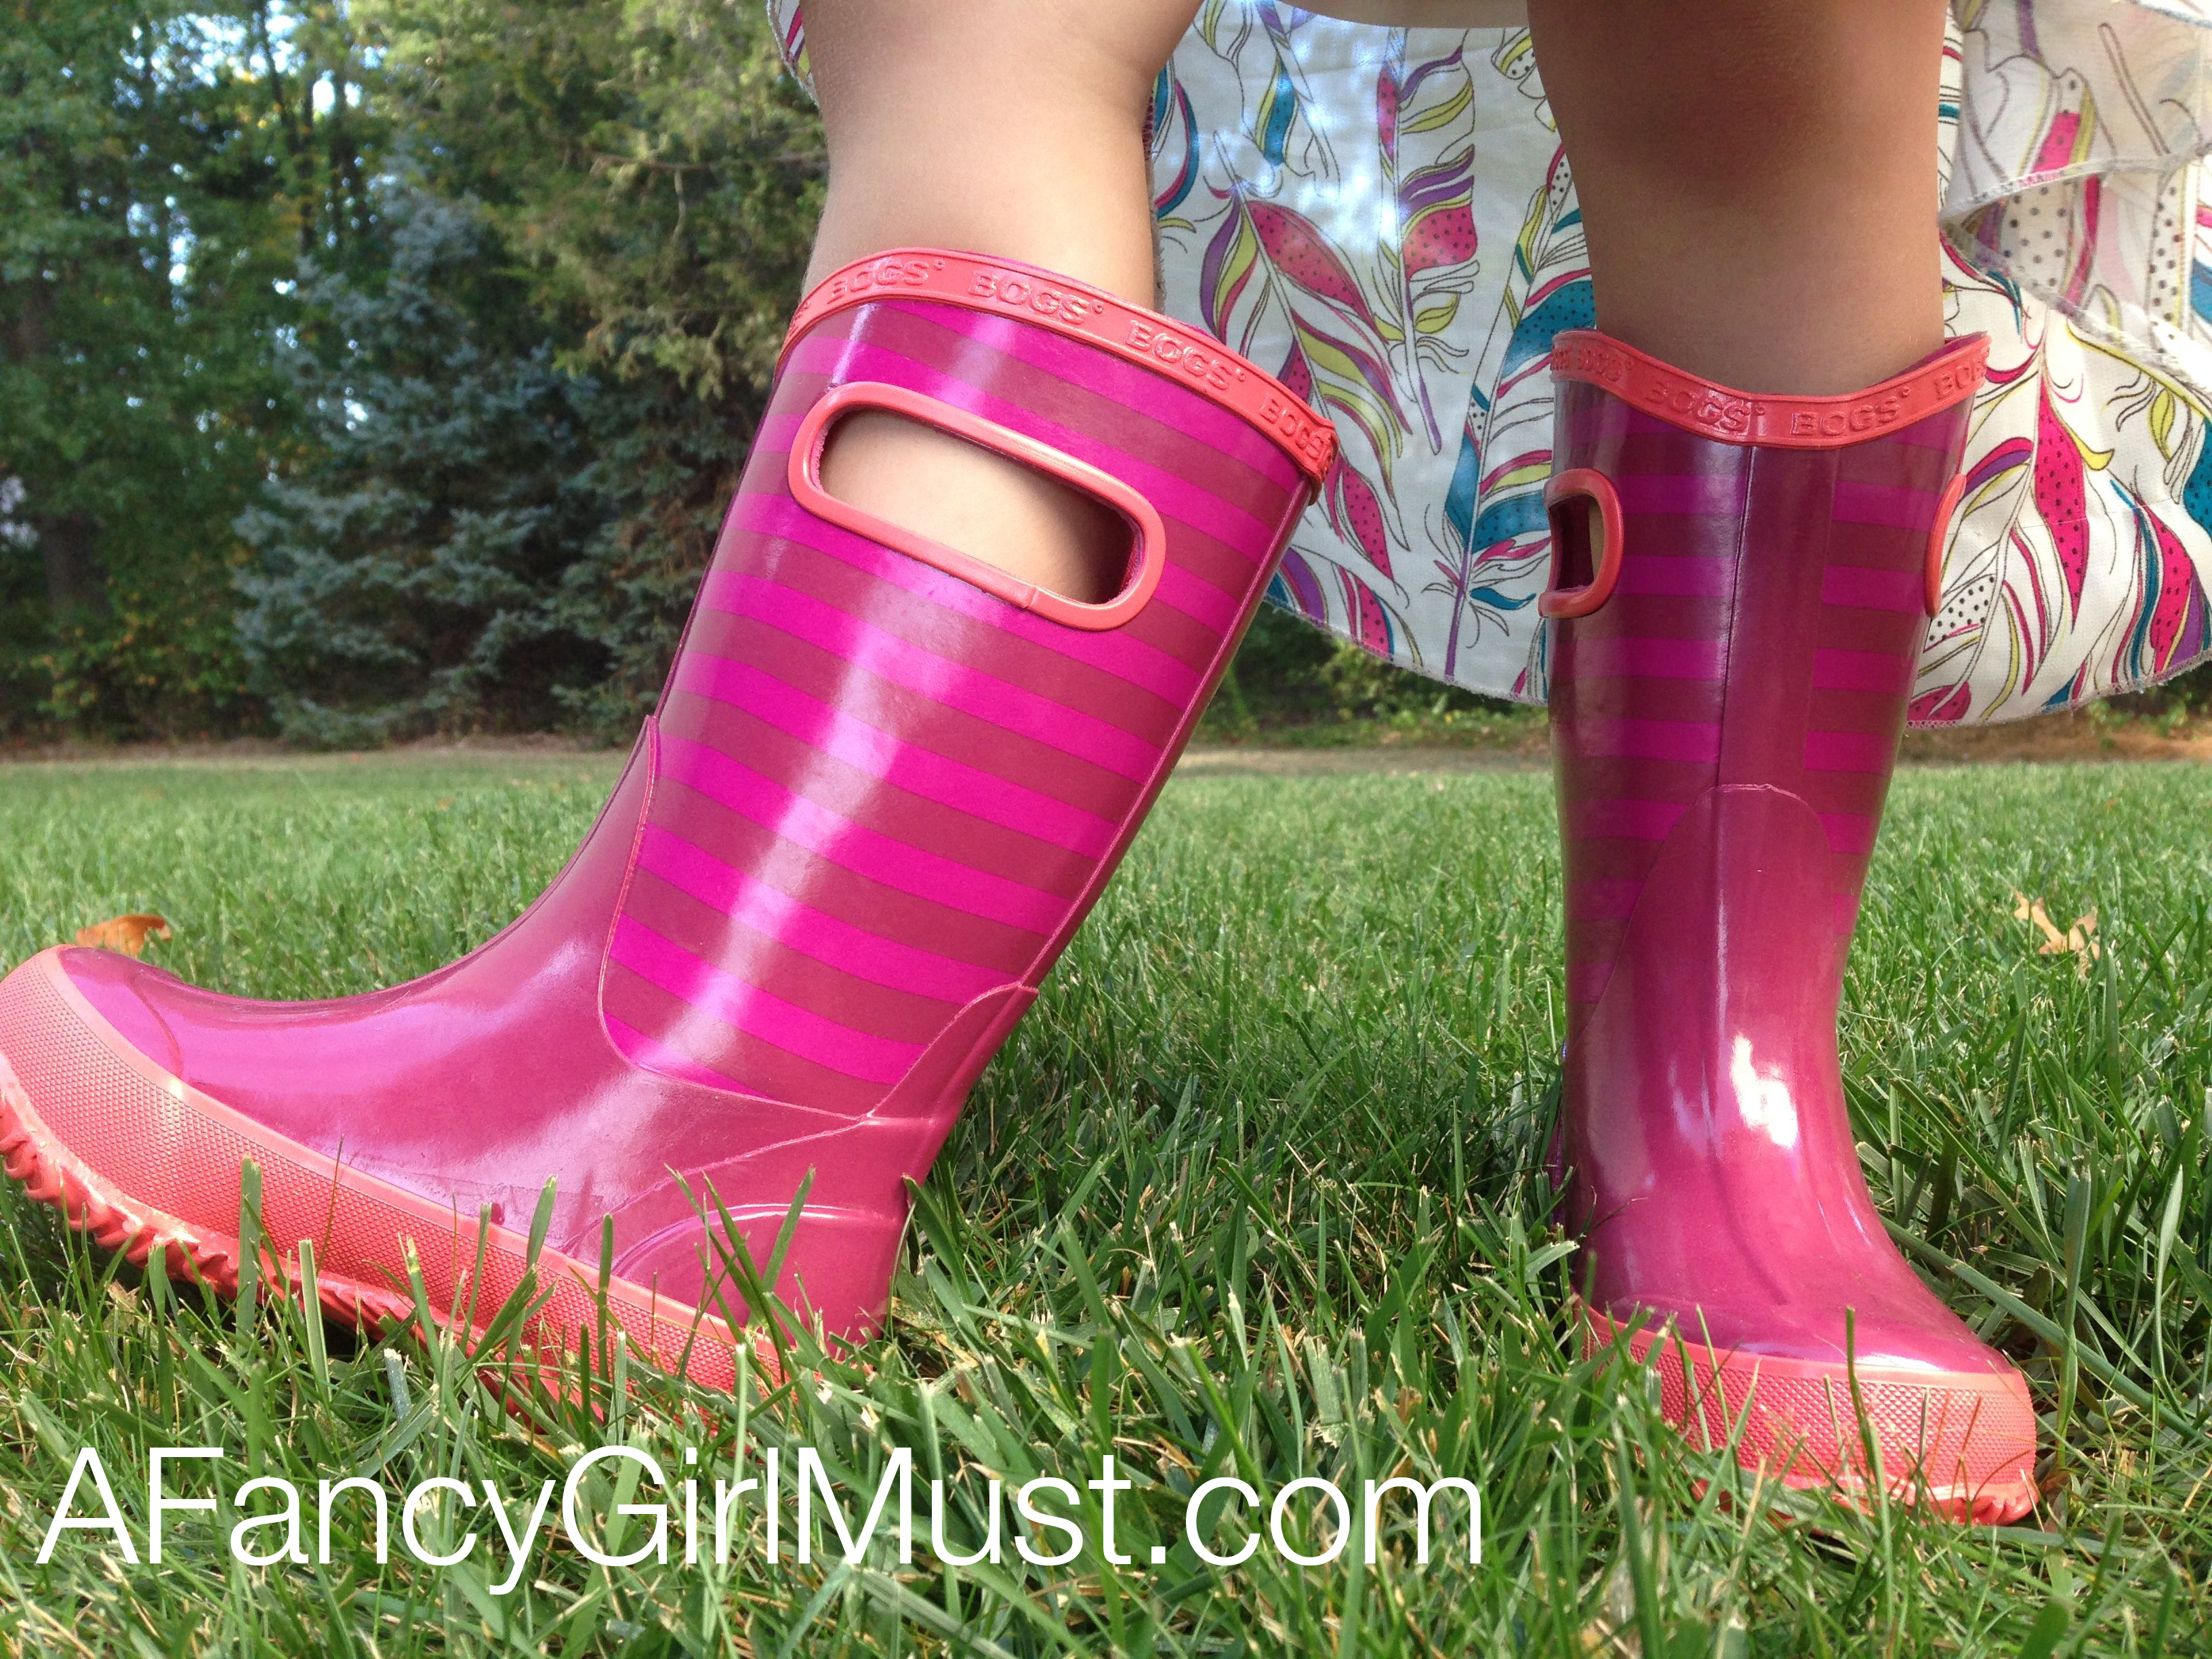 1d9b7dda24 A Fancy Girl Must - Puddle Jumping: Bogs Rain Boots for Girls